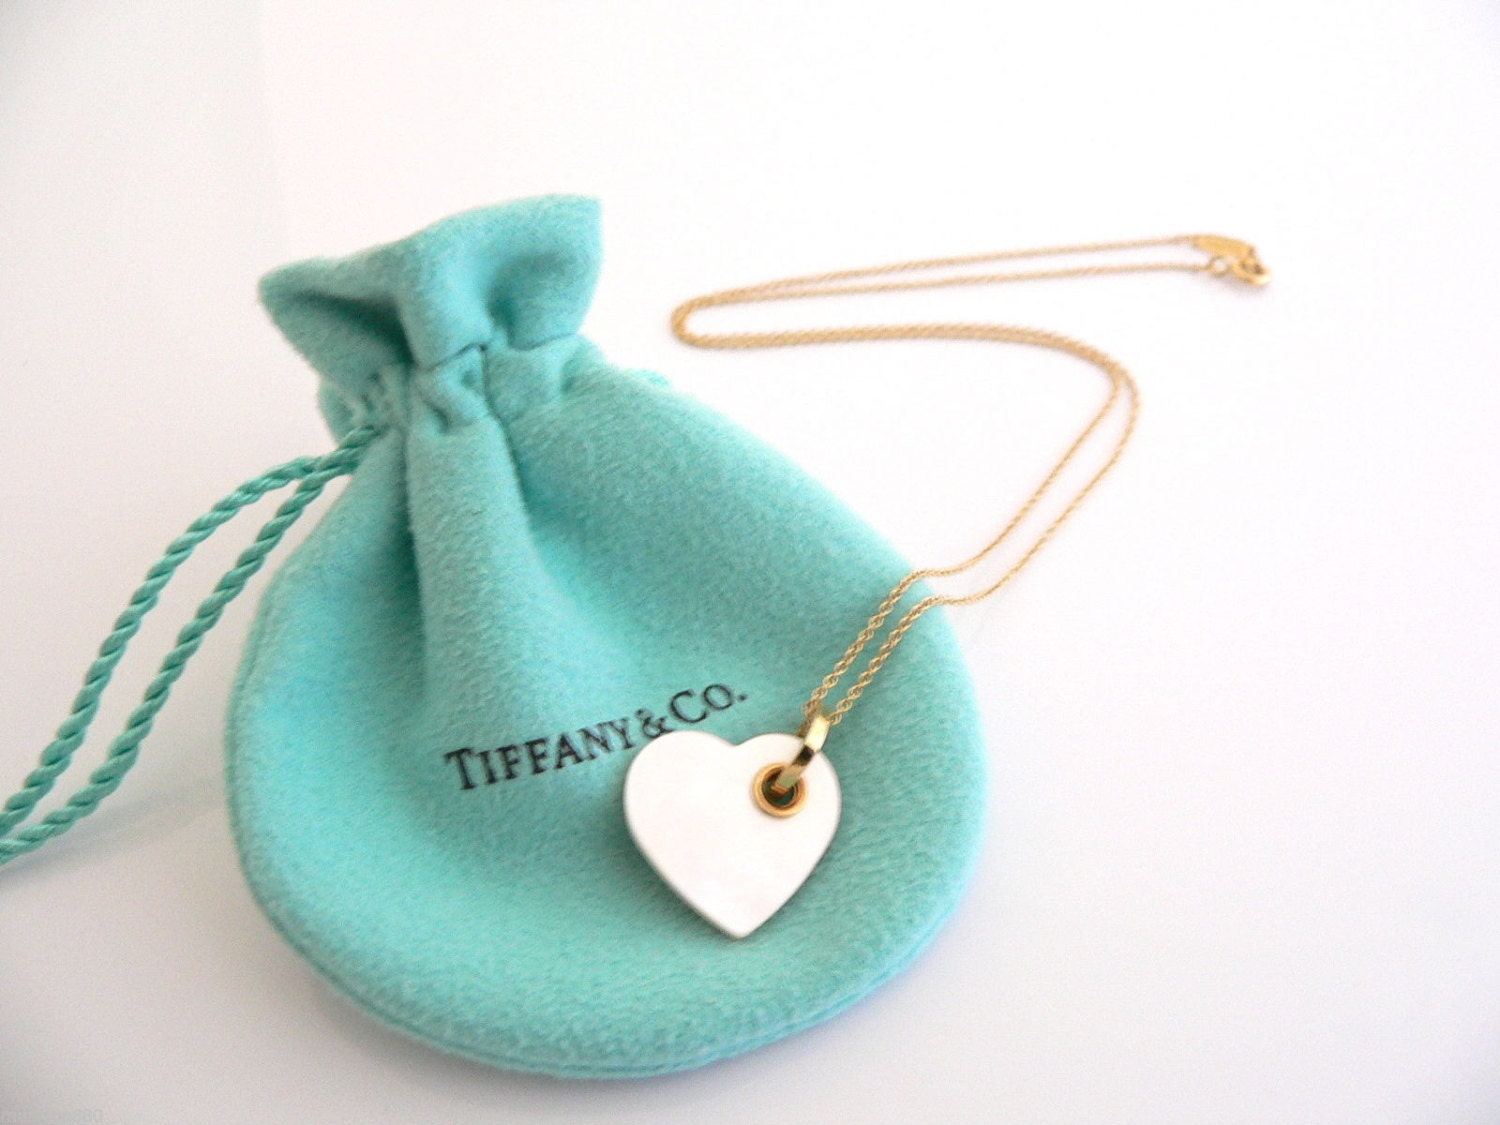 Tiffany co 18k gold mother of pearl double heart necklace zoom aloadofball Images